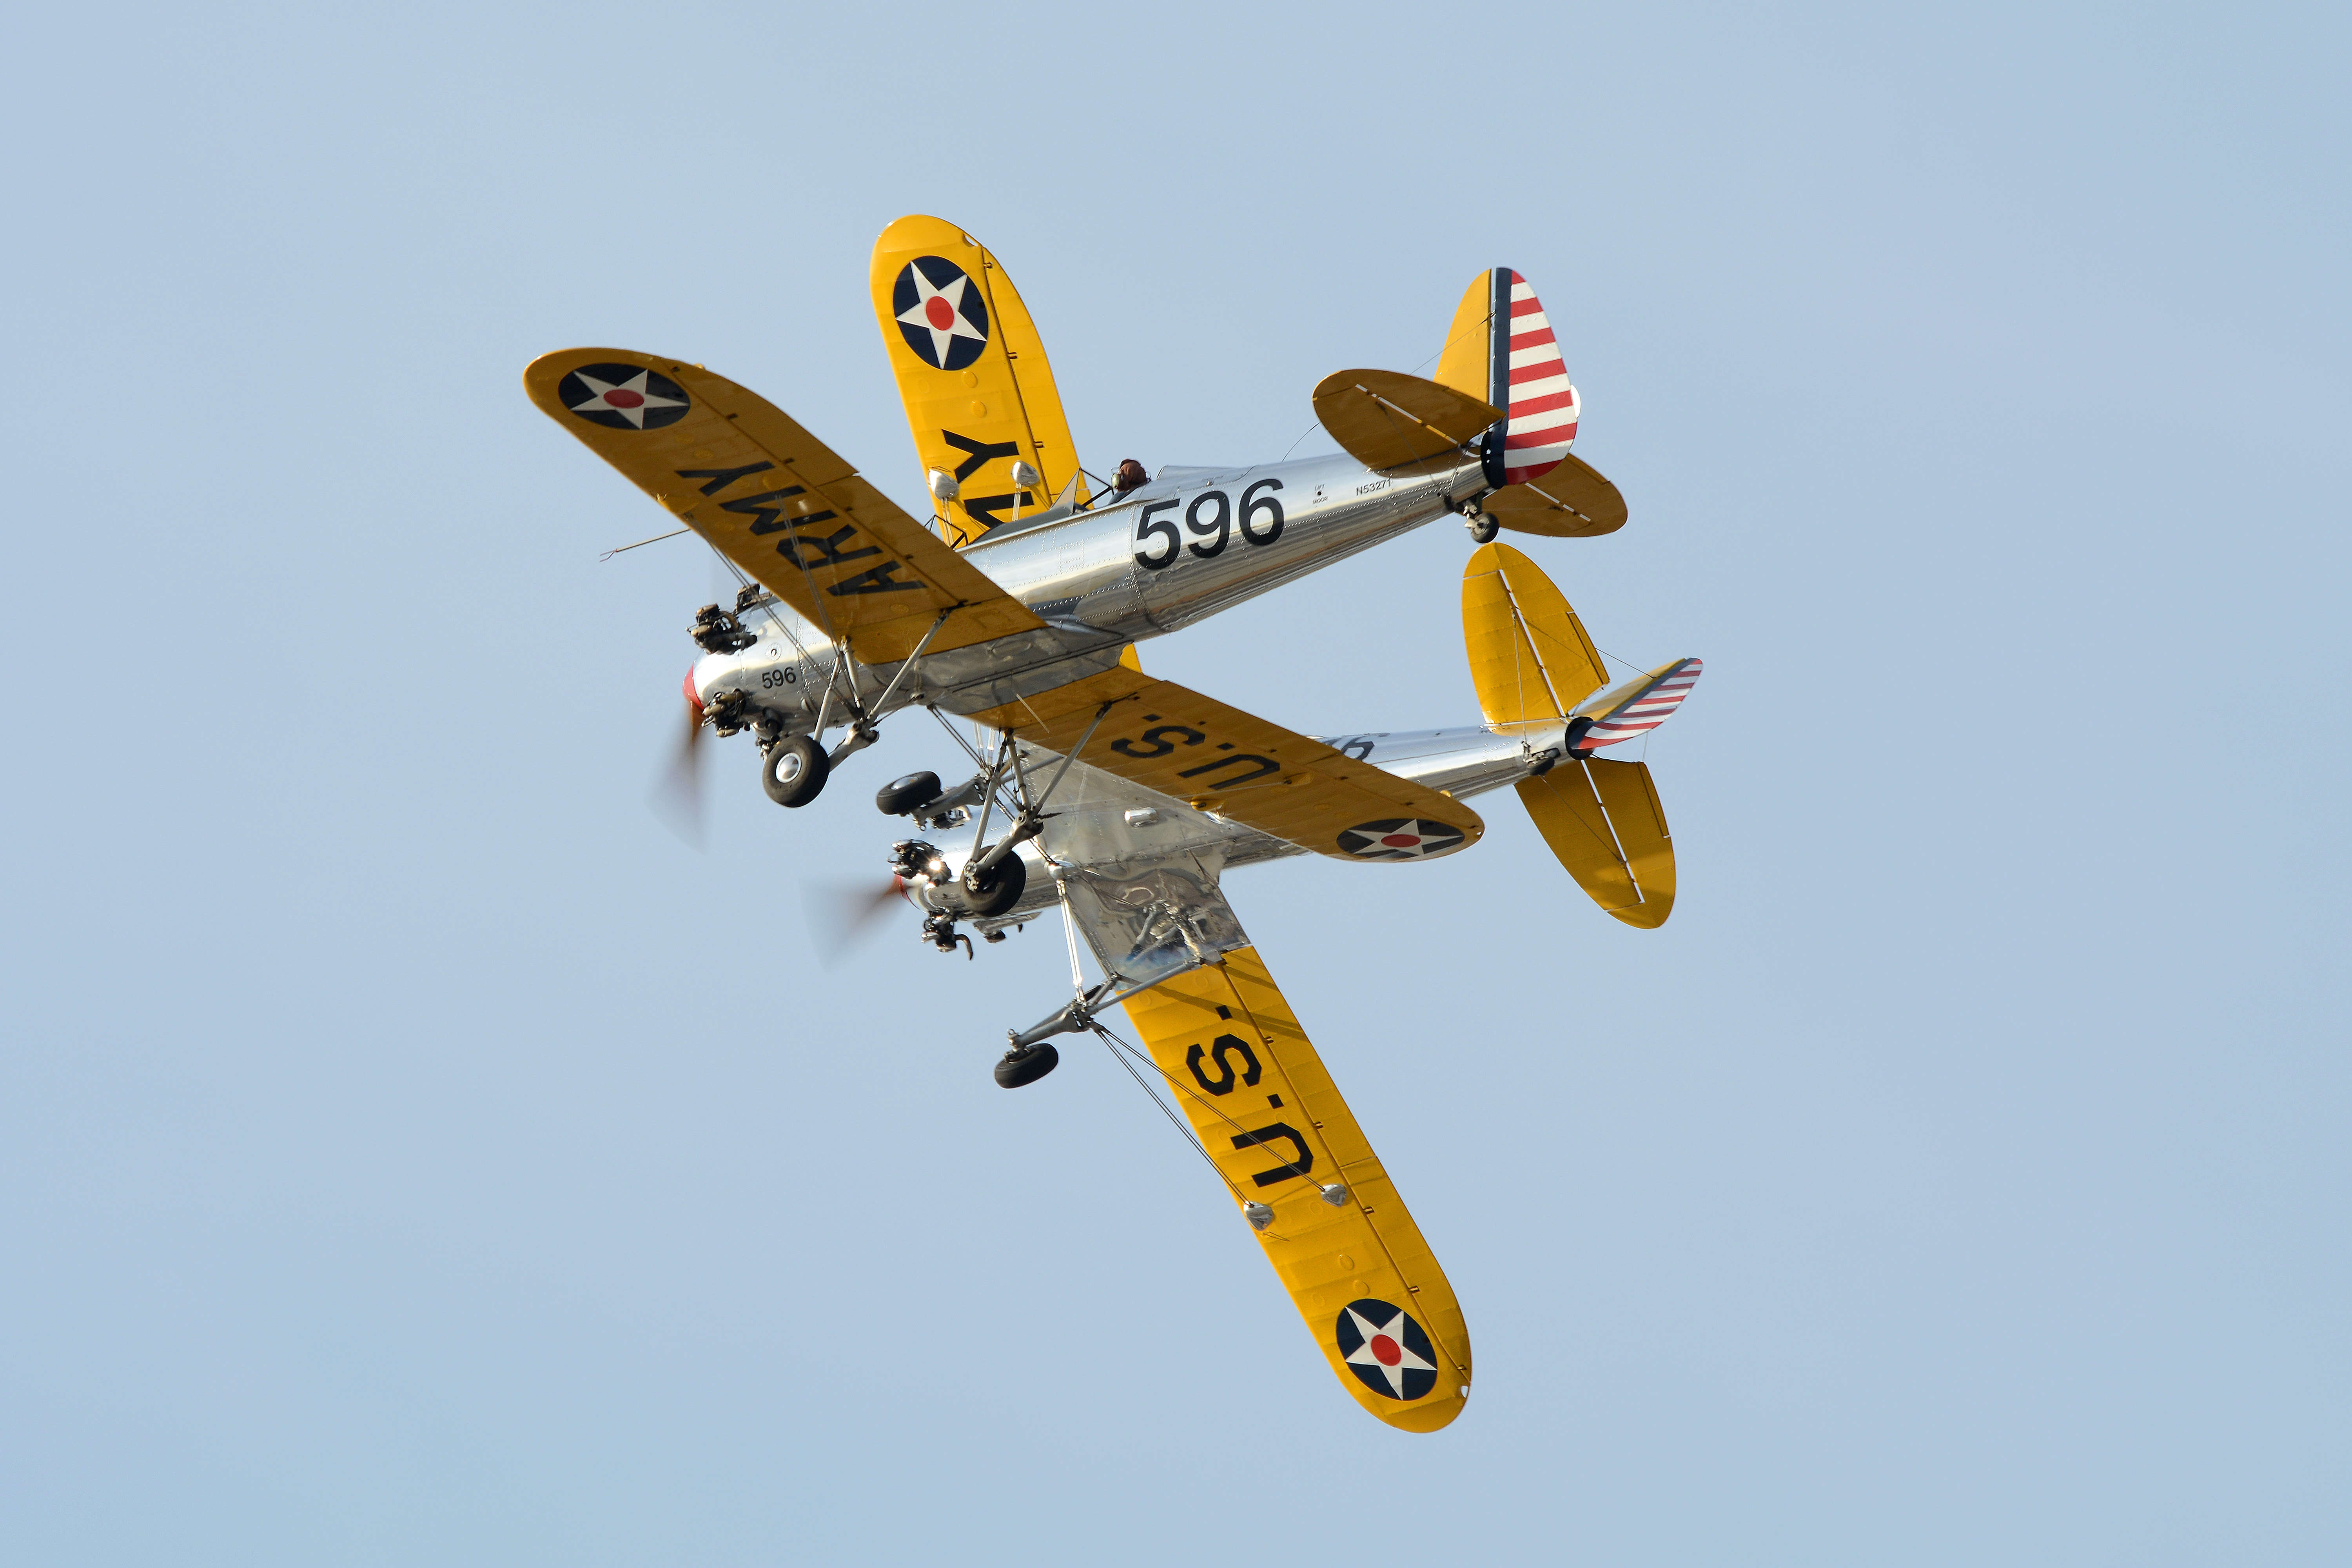 Cable airshow 2014